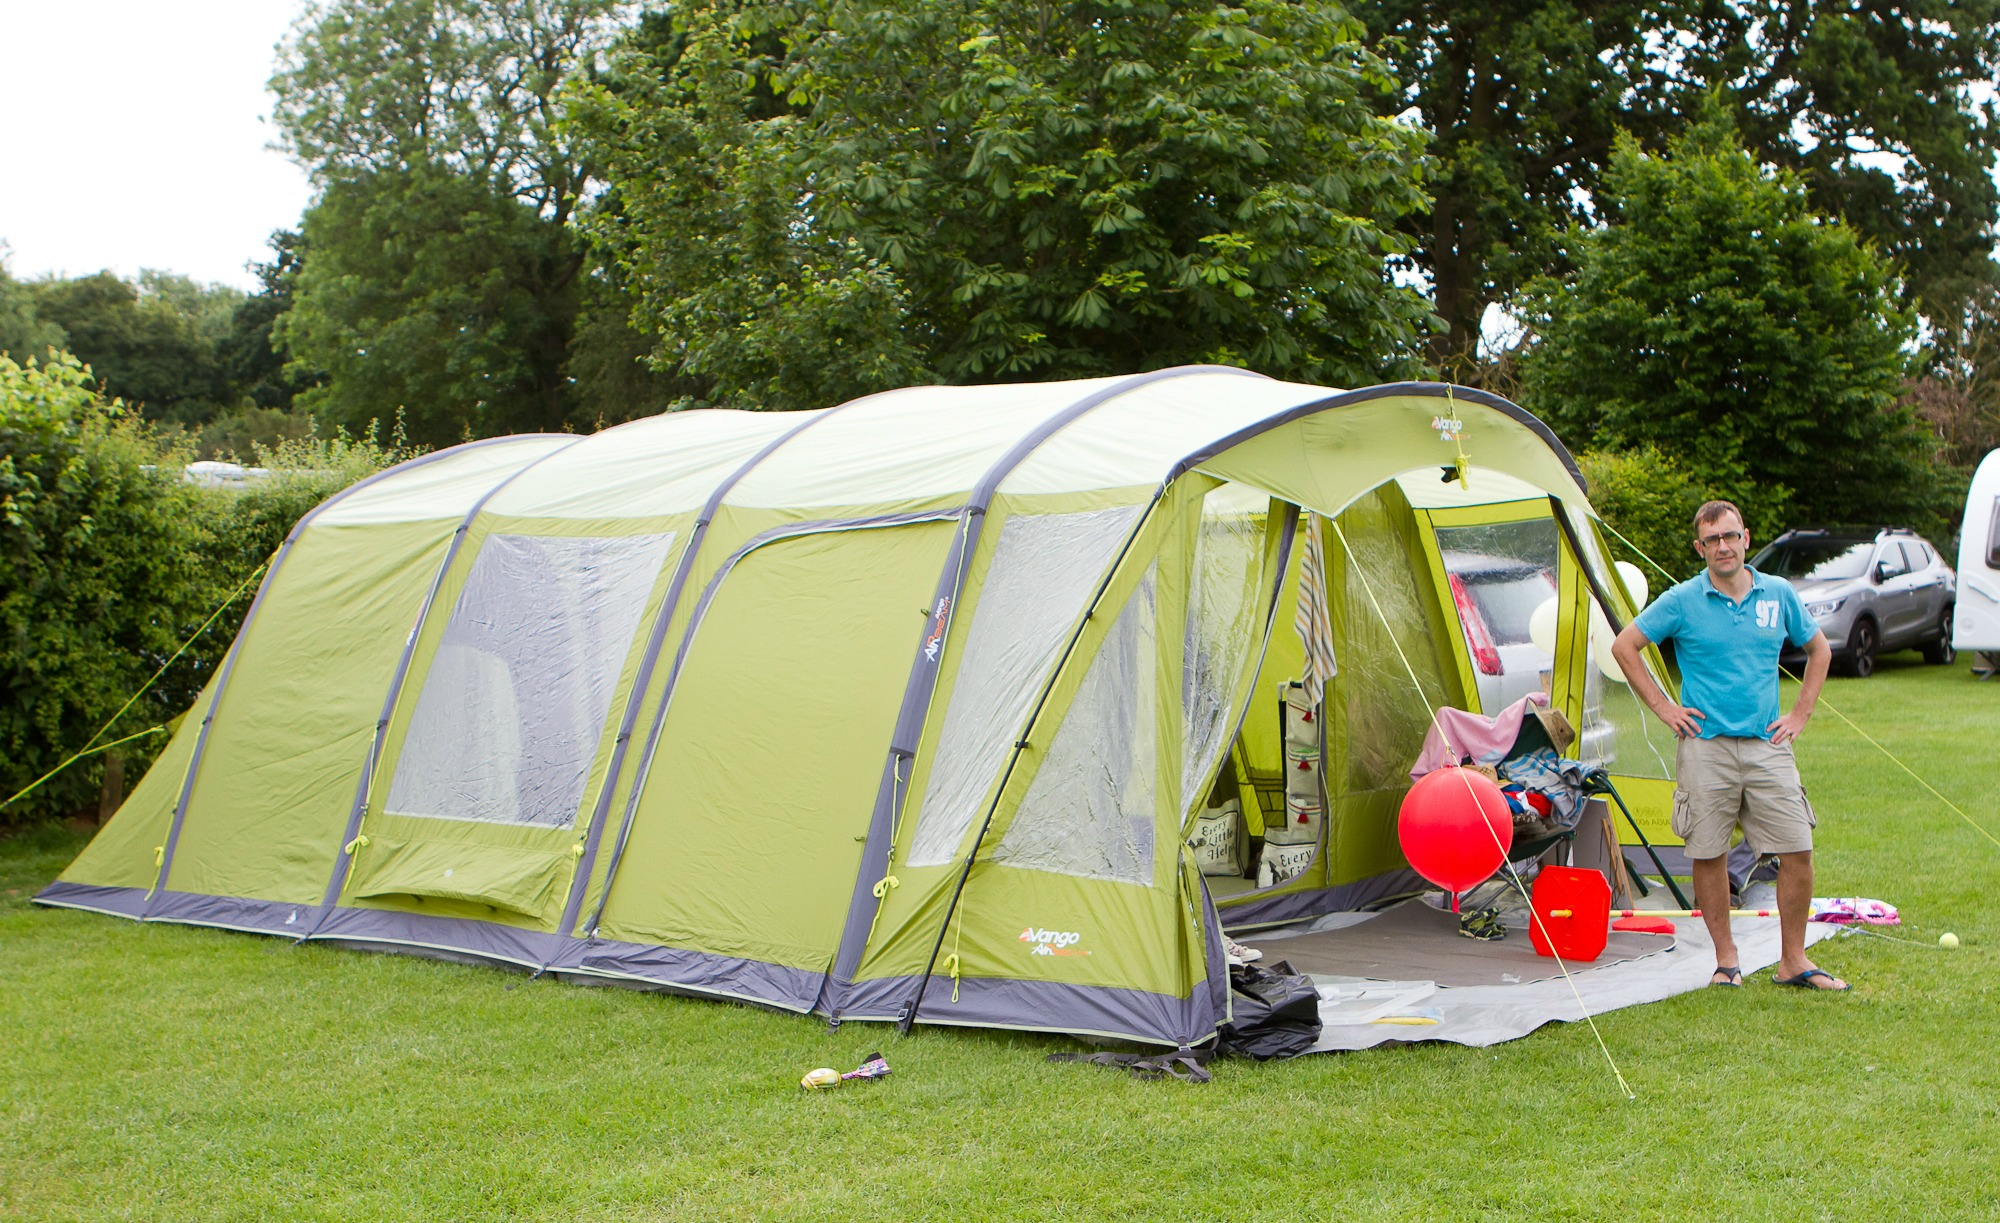 GUEST POST: An Inflatable Tent Saved my Marriage!